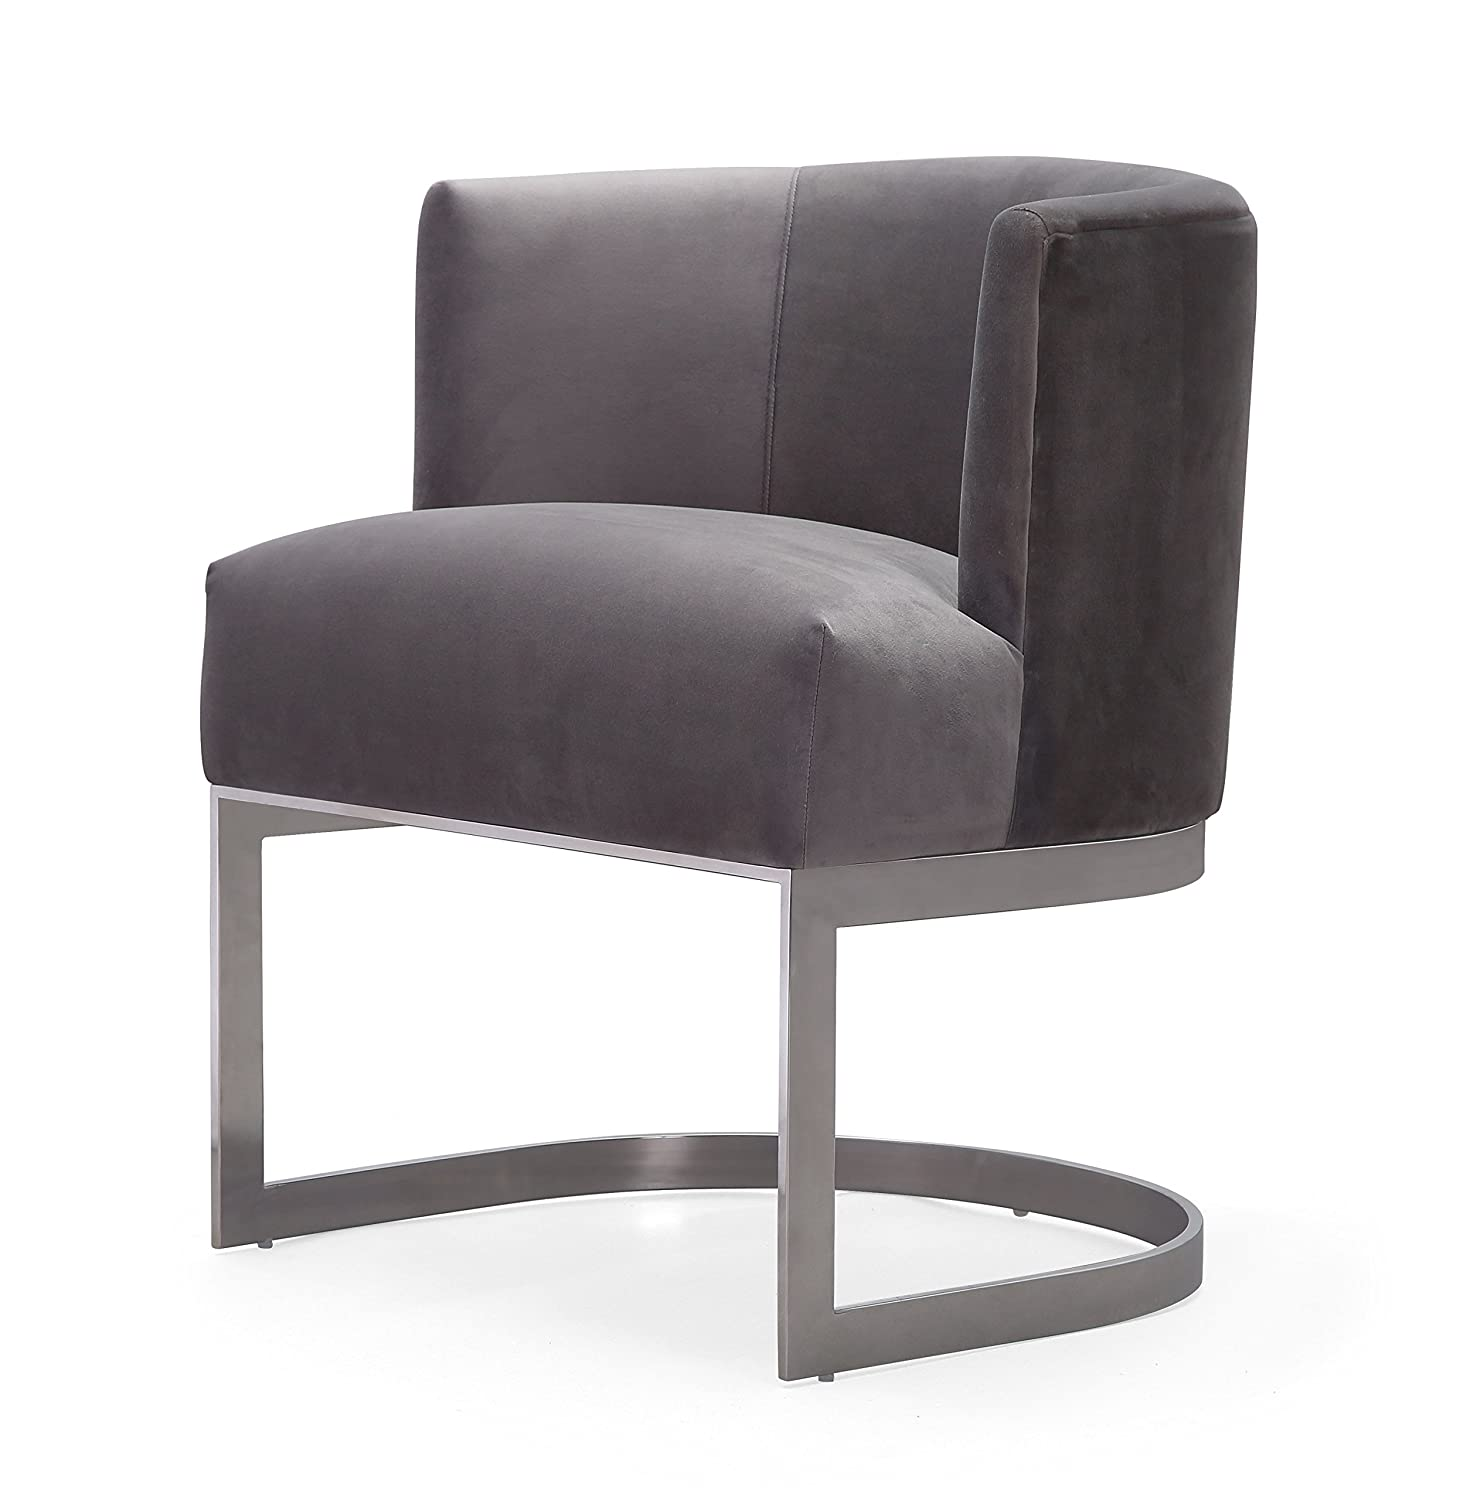 Amazon Com Tov Furniture Tov L6131 Velvet Accent Chair Small Gray